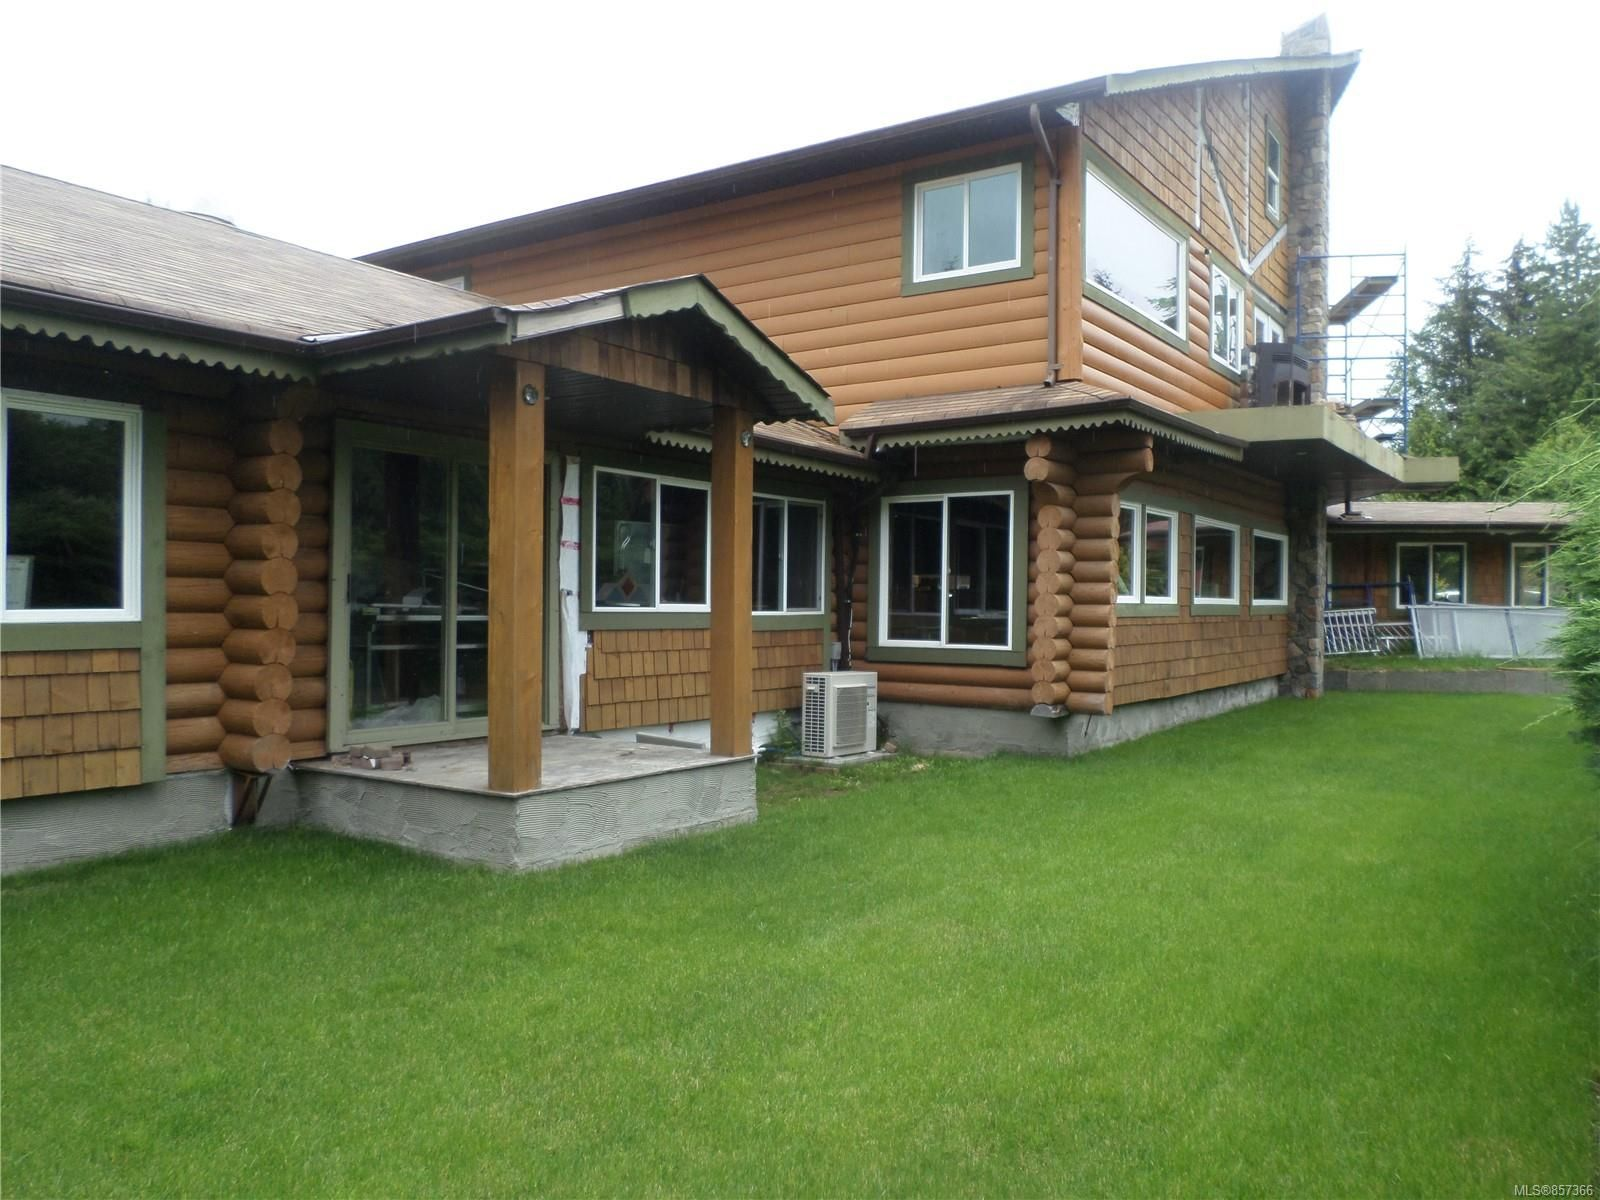 Photo 30: Photos: 1747 Nahmint Rd in : PQ Qualicum North Mixed Use for sale (Parksville/Qualicum)  : MLS®# 857366